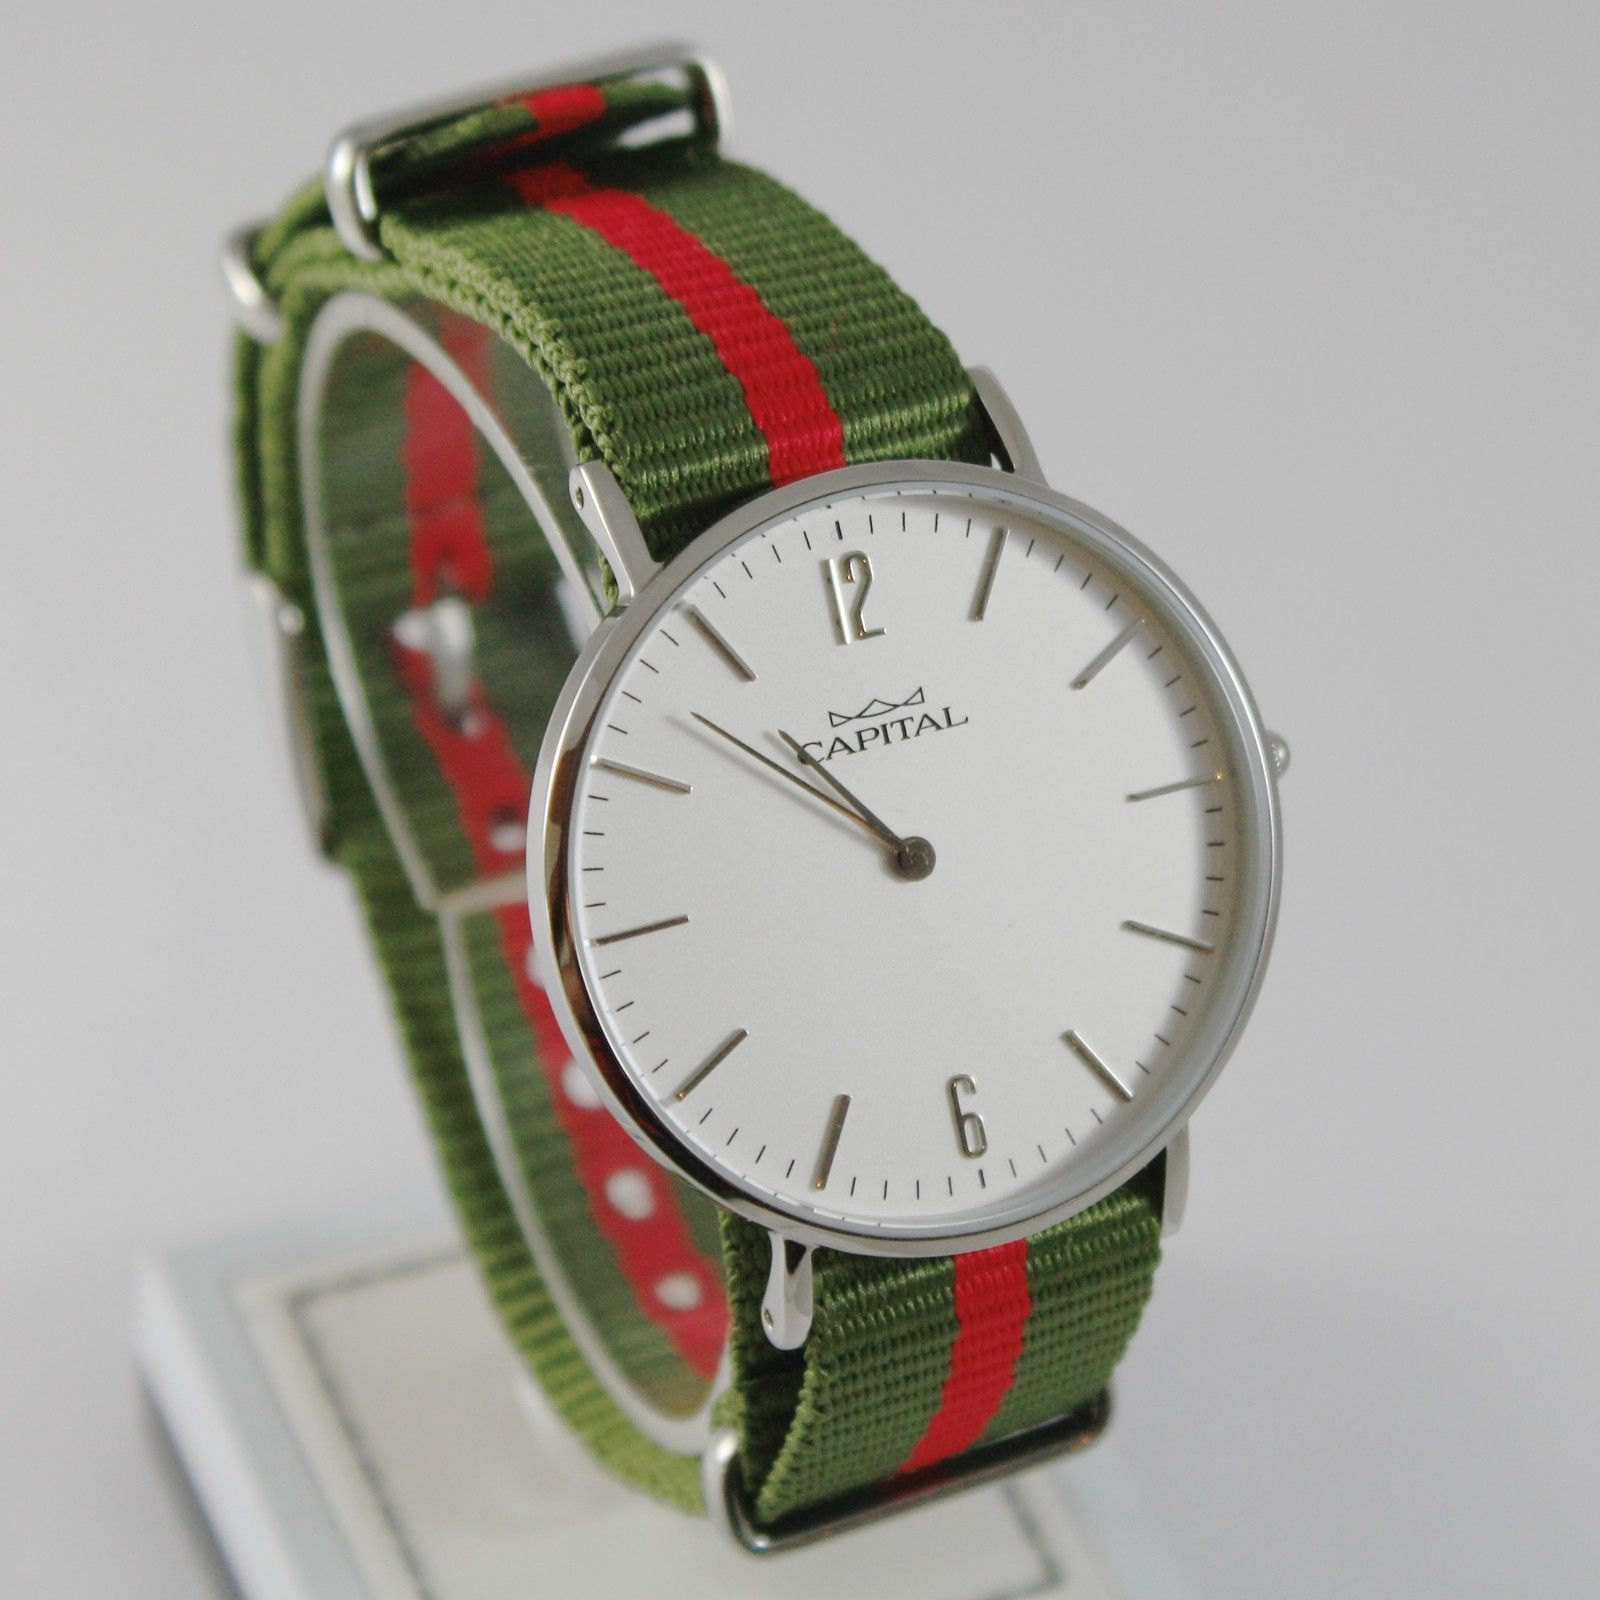 CAPITAL WATCH QUARTZ MOVEMENT 36 MM CASE GREEN AND RED FABRIC BAND NYLON VINTAGE